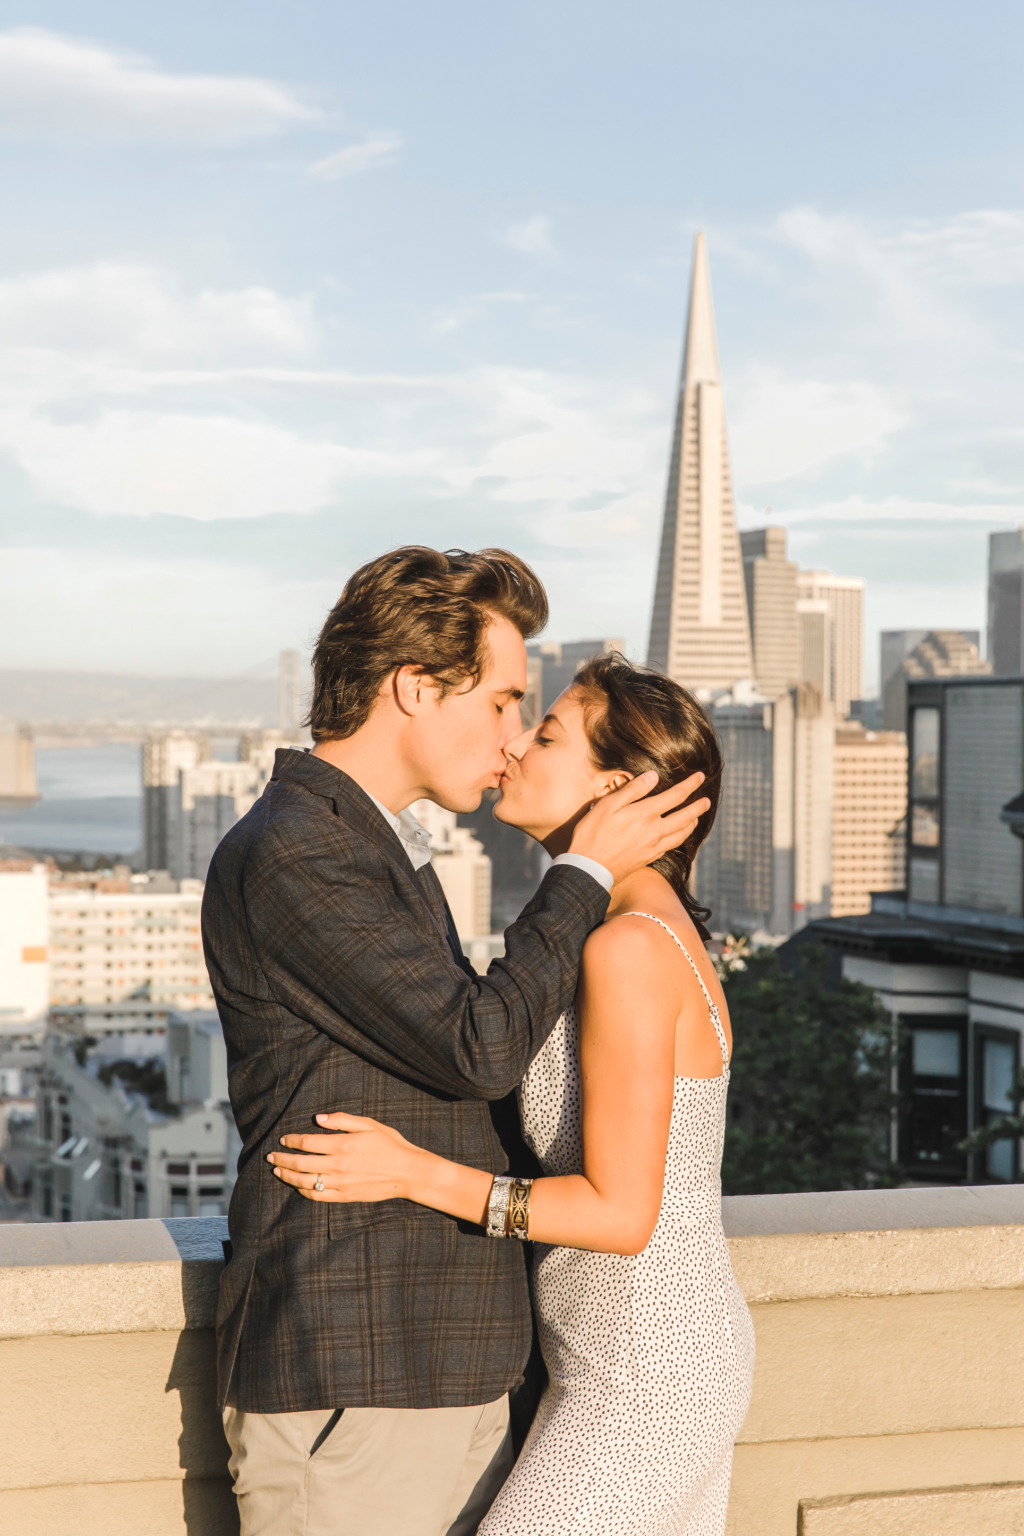 There is nothing like a gorgeous sunset in San Francisco especially with these two love birds.